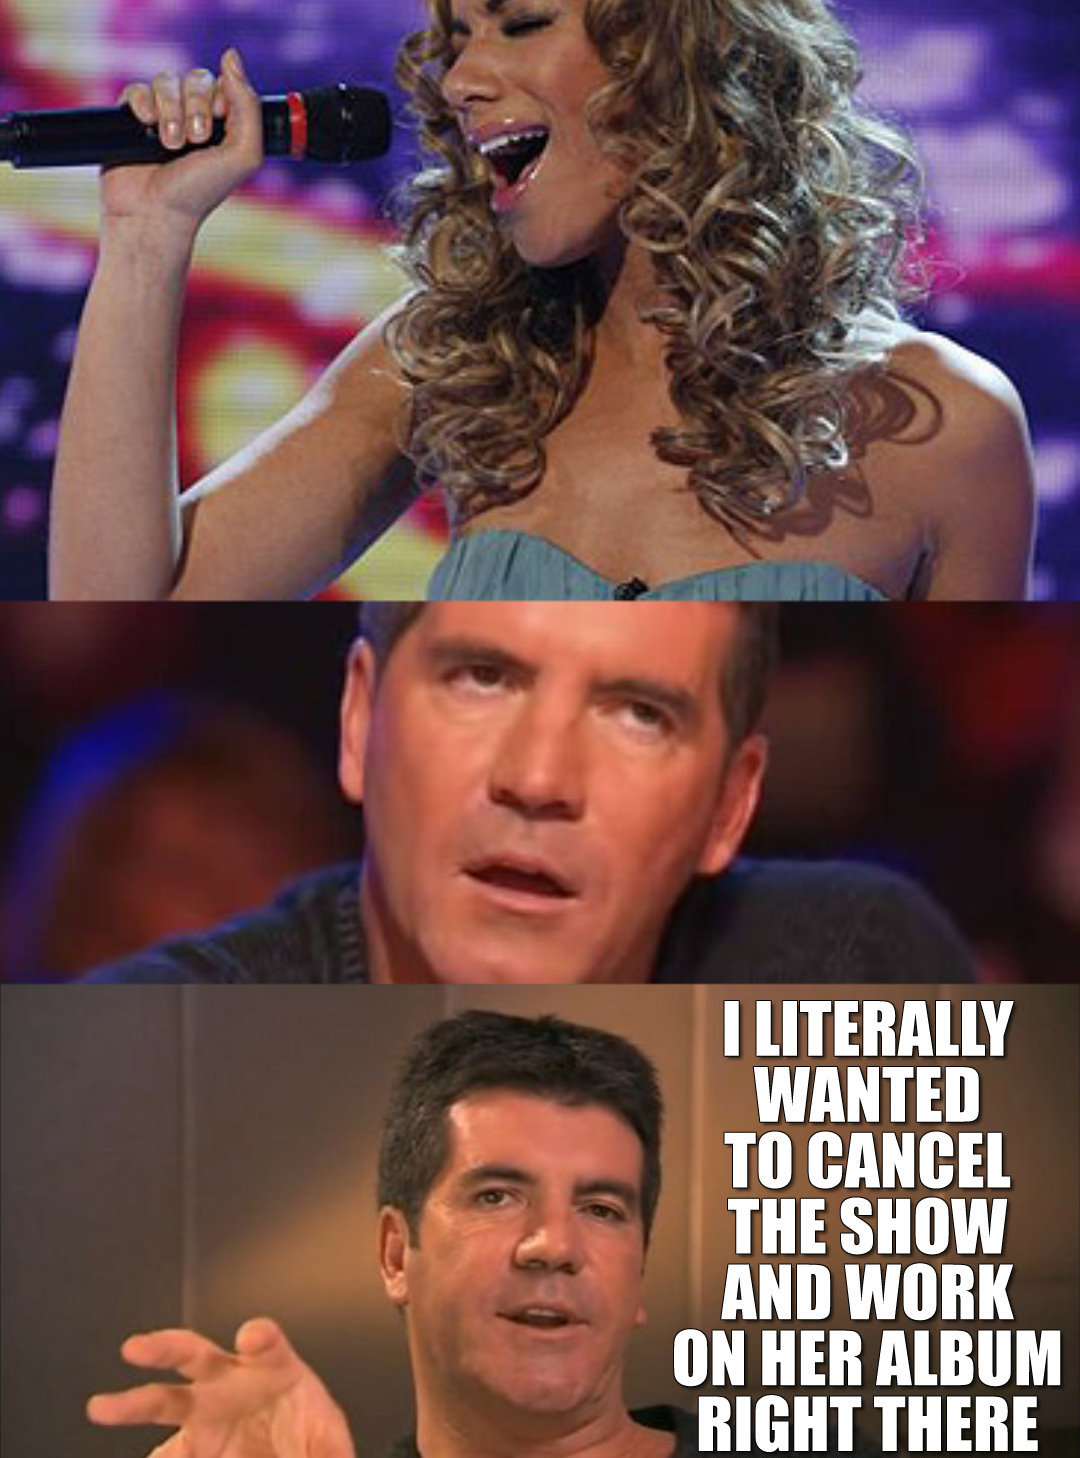 leonalewismemes:  —- Post #221 —- _______________________ Follow our Tumblr page (if you haven't already) Like our Facebook Page Follow us on Twitter Subscribe to us on Youtube Email us any ideas, memes, photos, videos, questions, ideas, comments or inquiries etc: leonalewismemes@hotmail.com